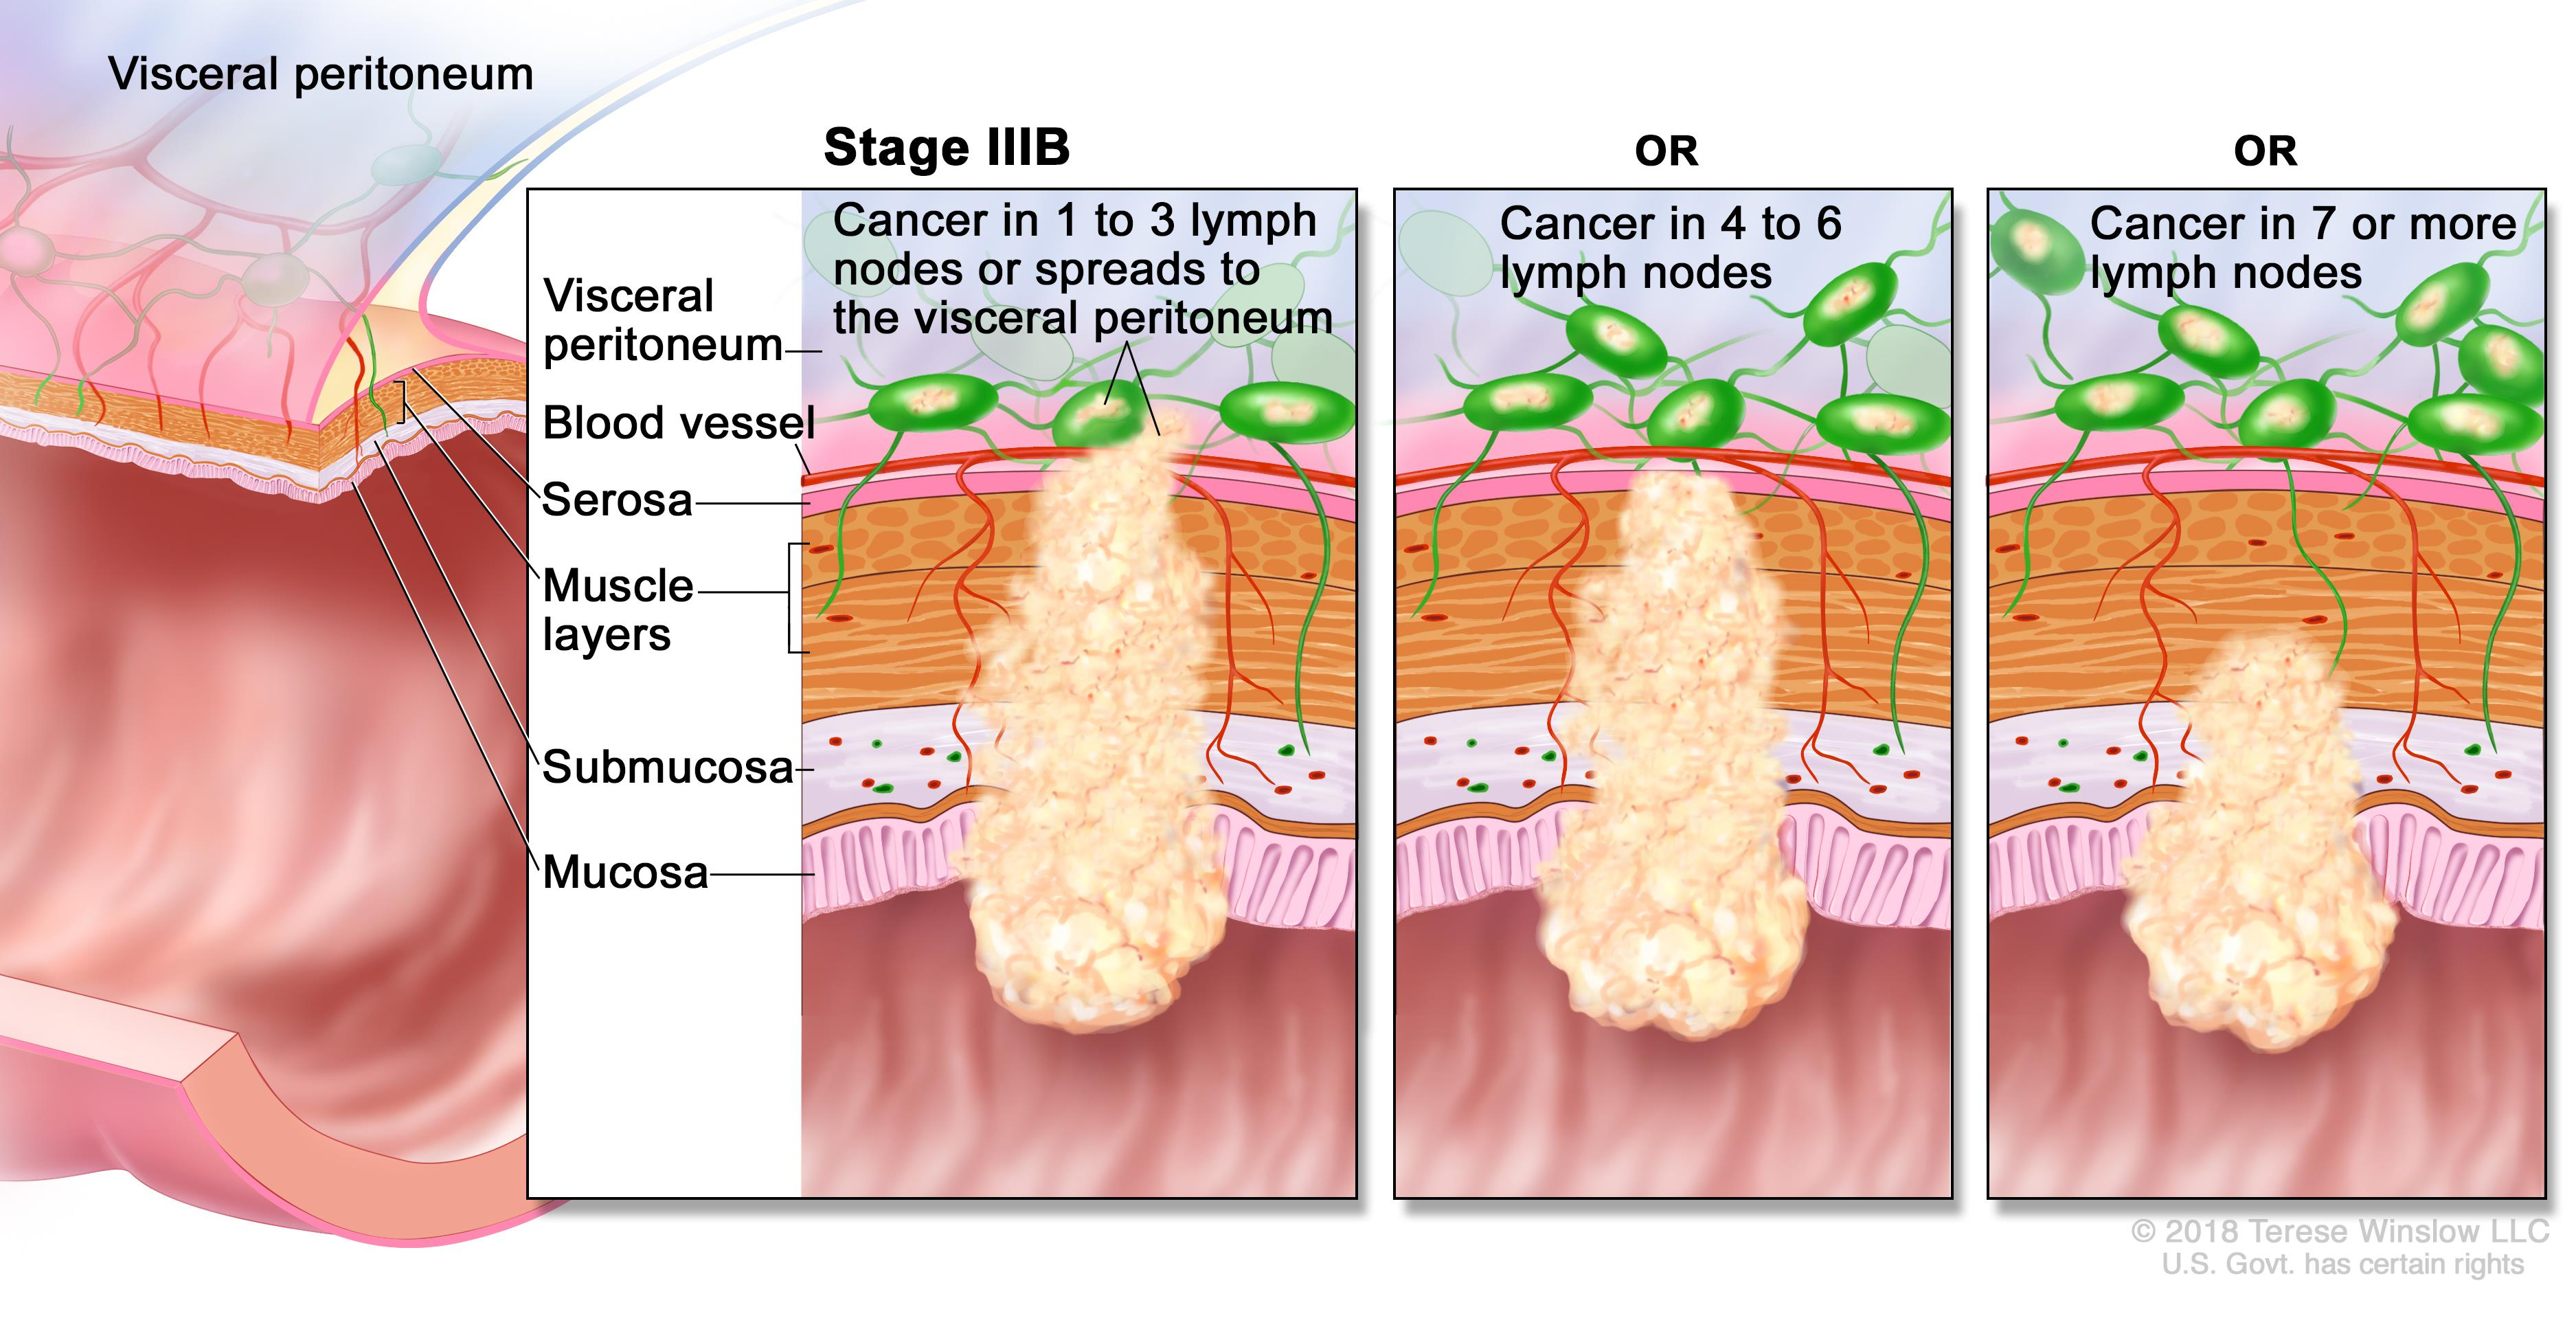 stages of cervical cancer Staging cervical cancer once cervical cancer is diagnosed, the stage of the cancer is determined cervical cancer staging is based on physical examination and diagnostic tests (eg, colposcopy, cystoscopy, proctoscopy.